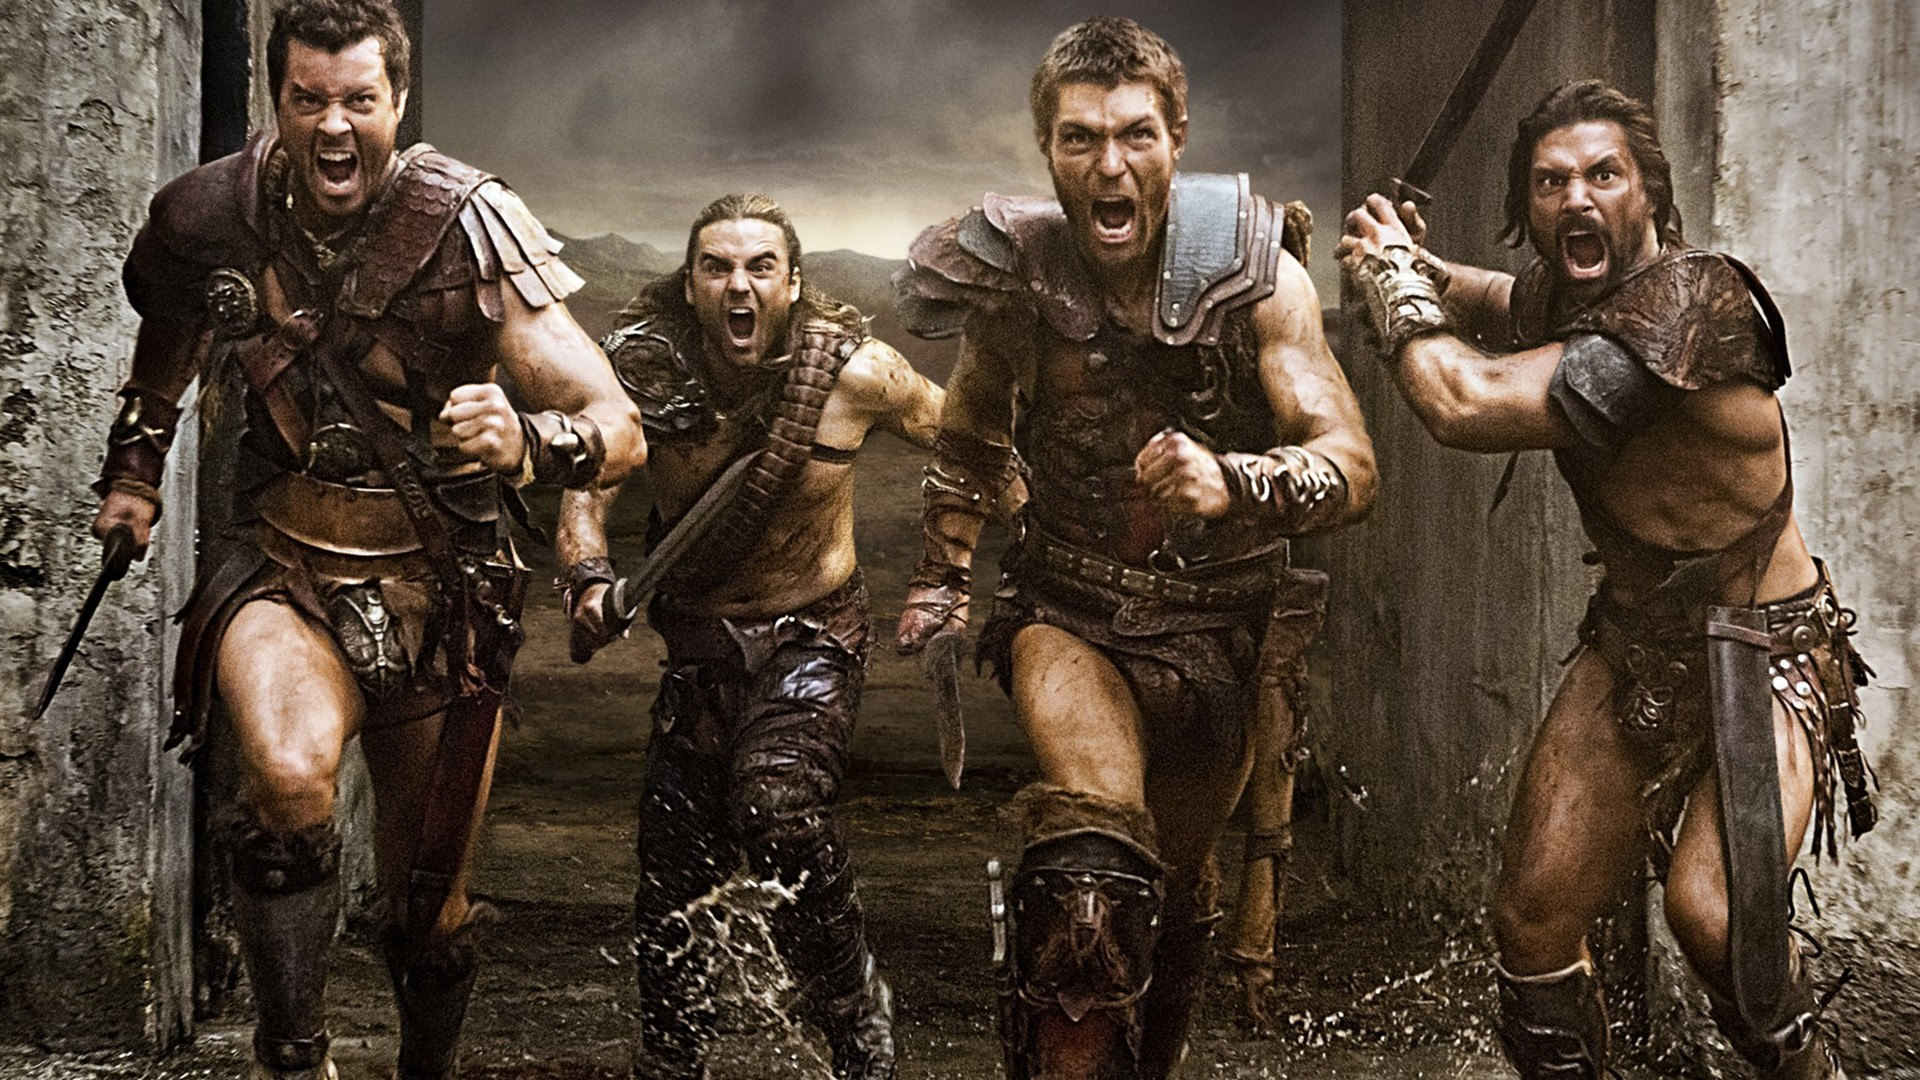 Filme Spartacus intended for i want to break free – spartacus : war of the damned   smells like